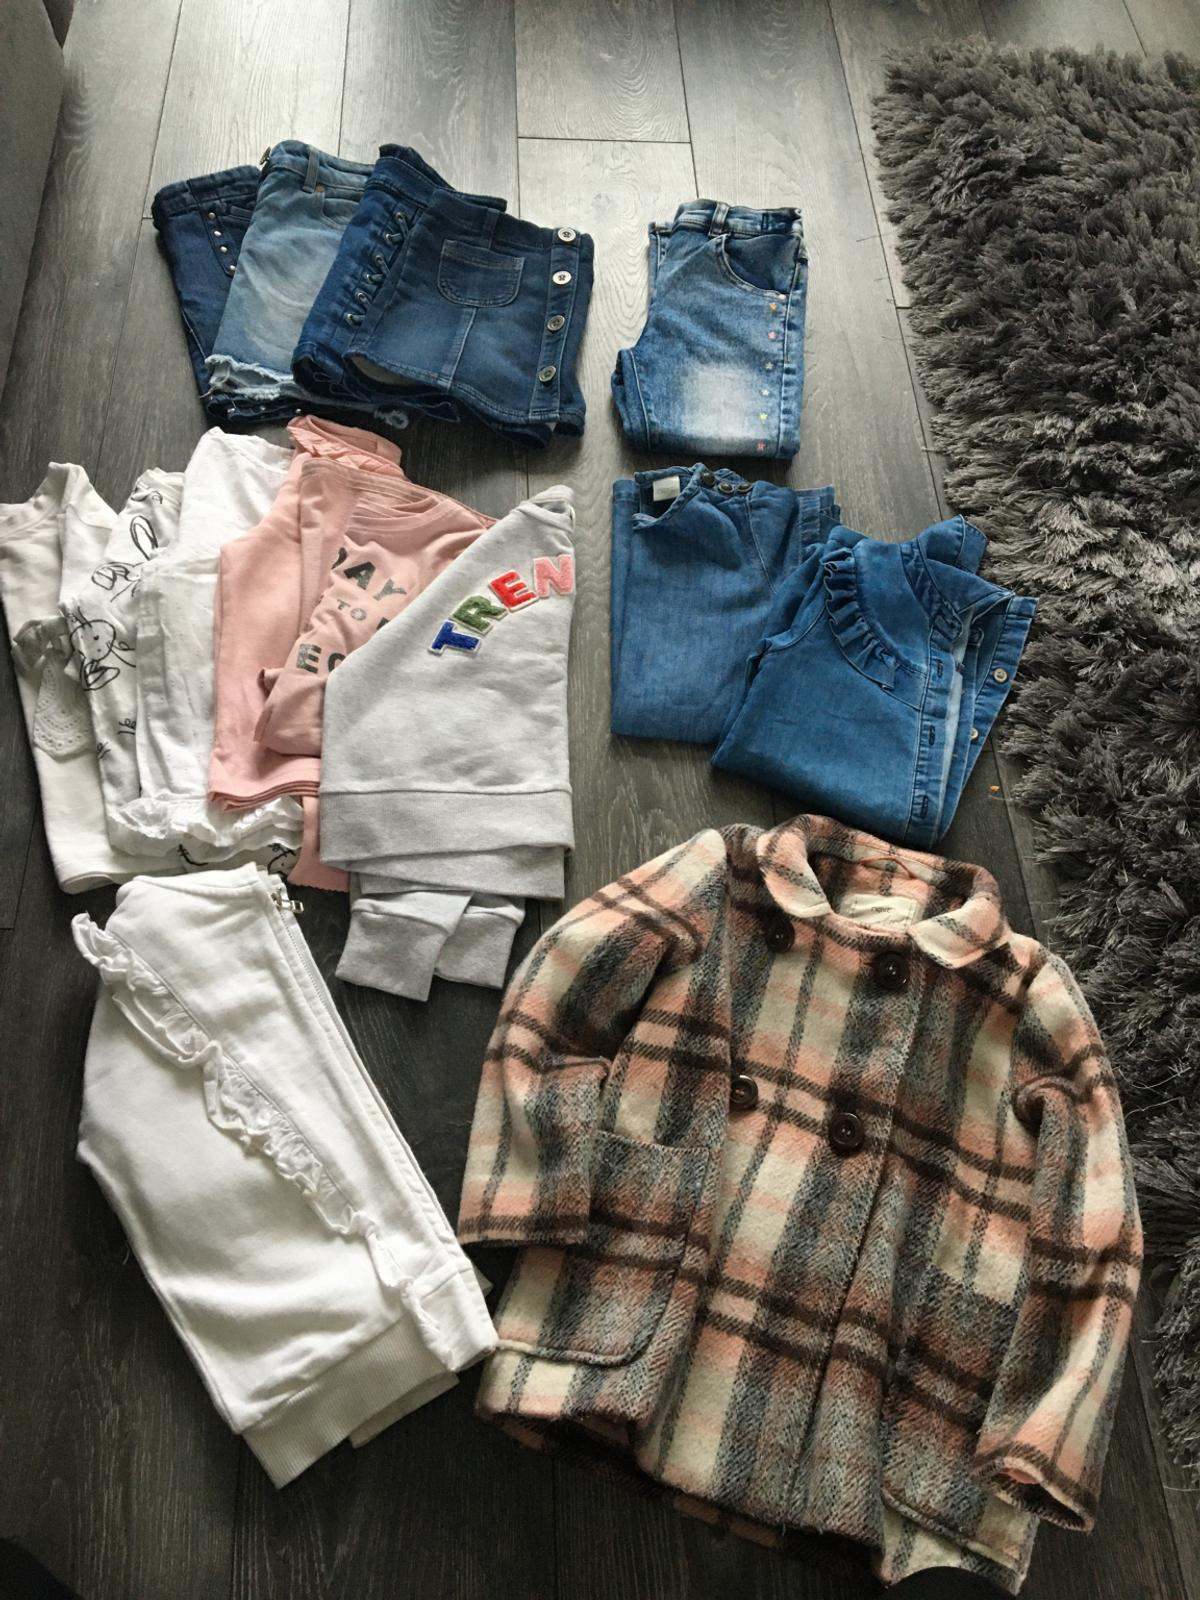 All from next in great condition 4 denim skirts Checked coat White hoody Trending jumper Jeans Two denim dresses Five tops